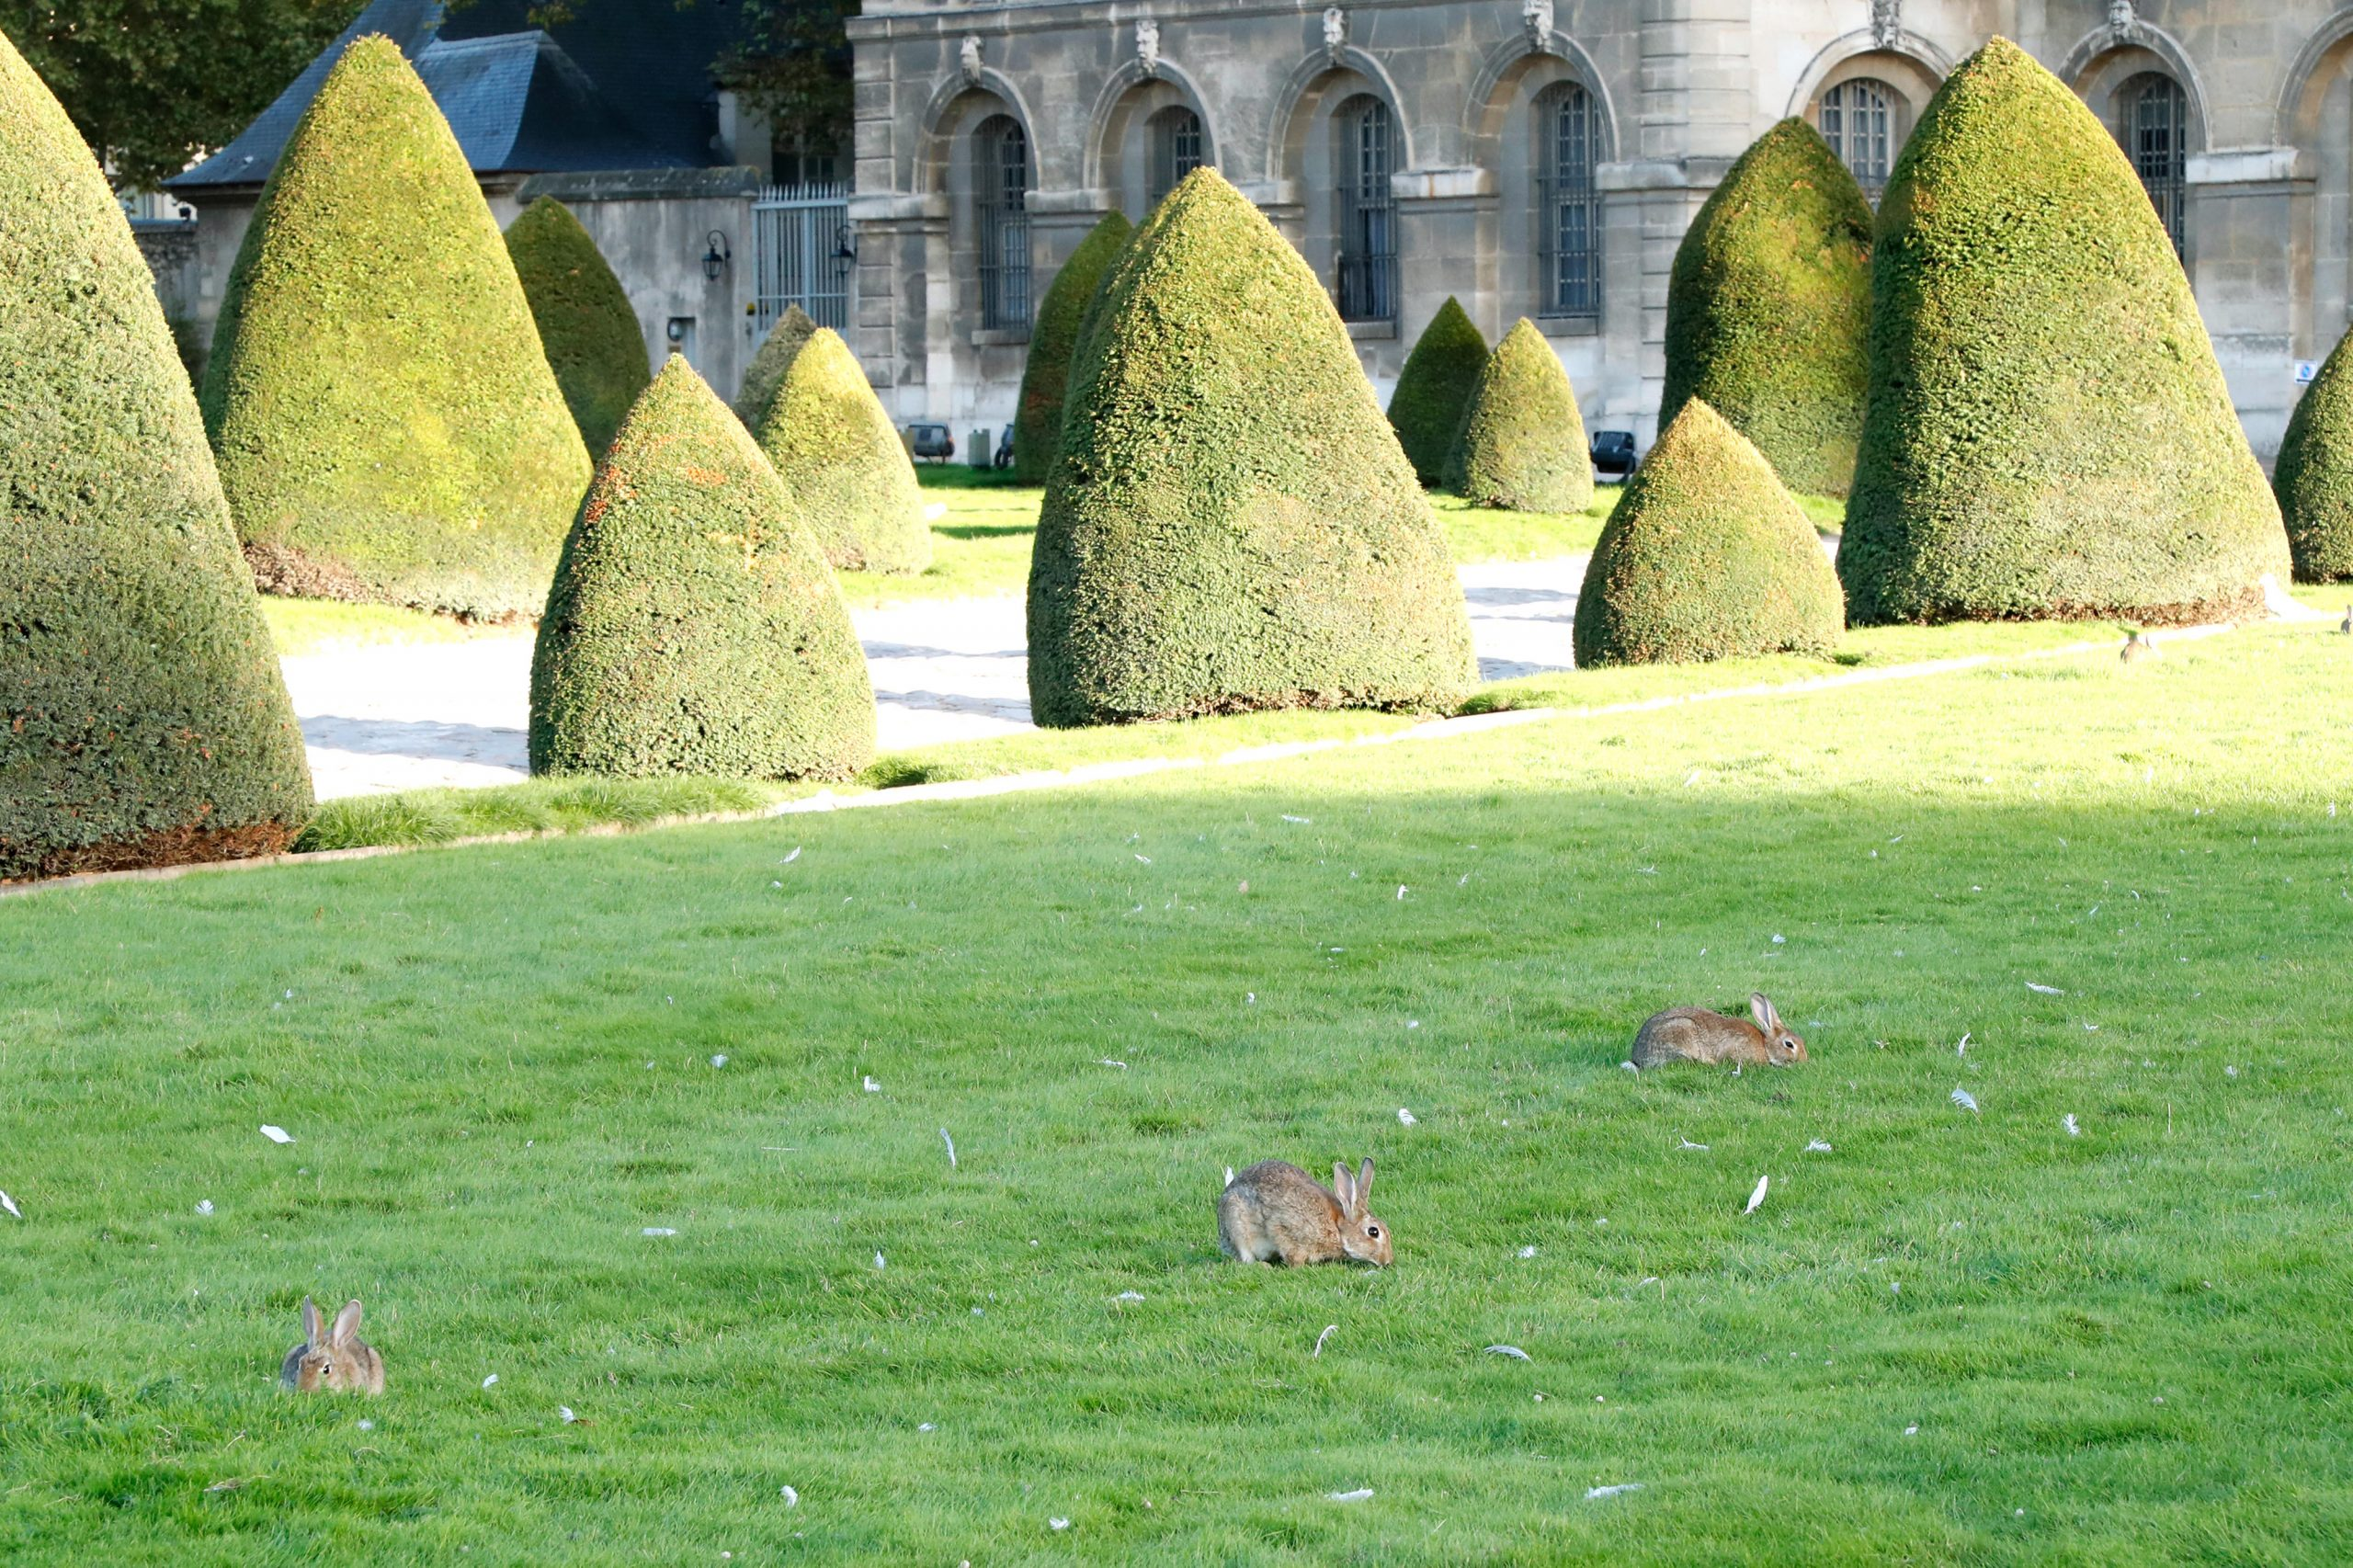 Rabbits at Les Invalides. The colony there is Paris' second-biggest, after the one at the bois de Boulogne.